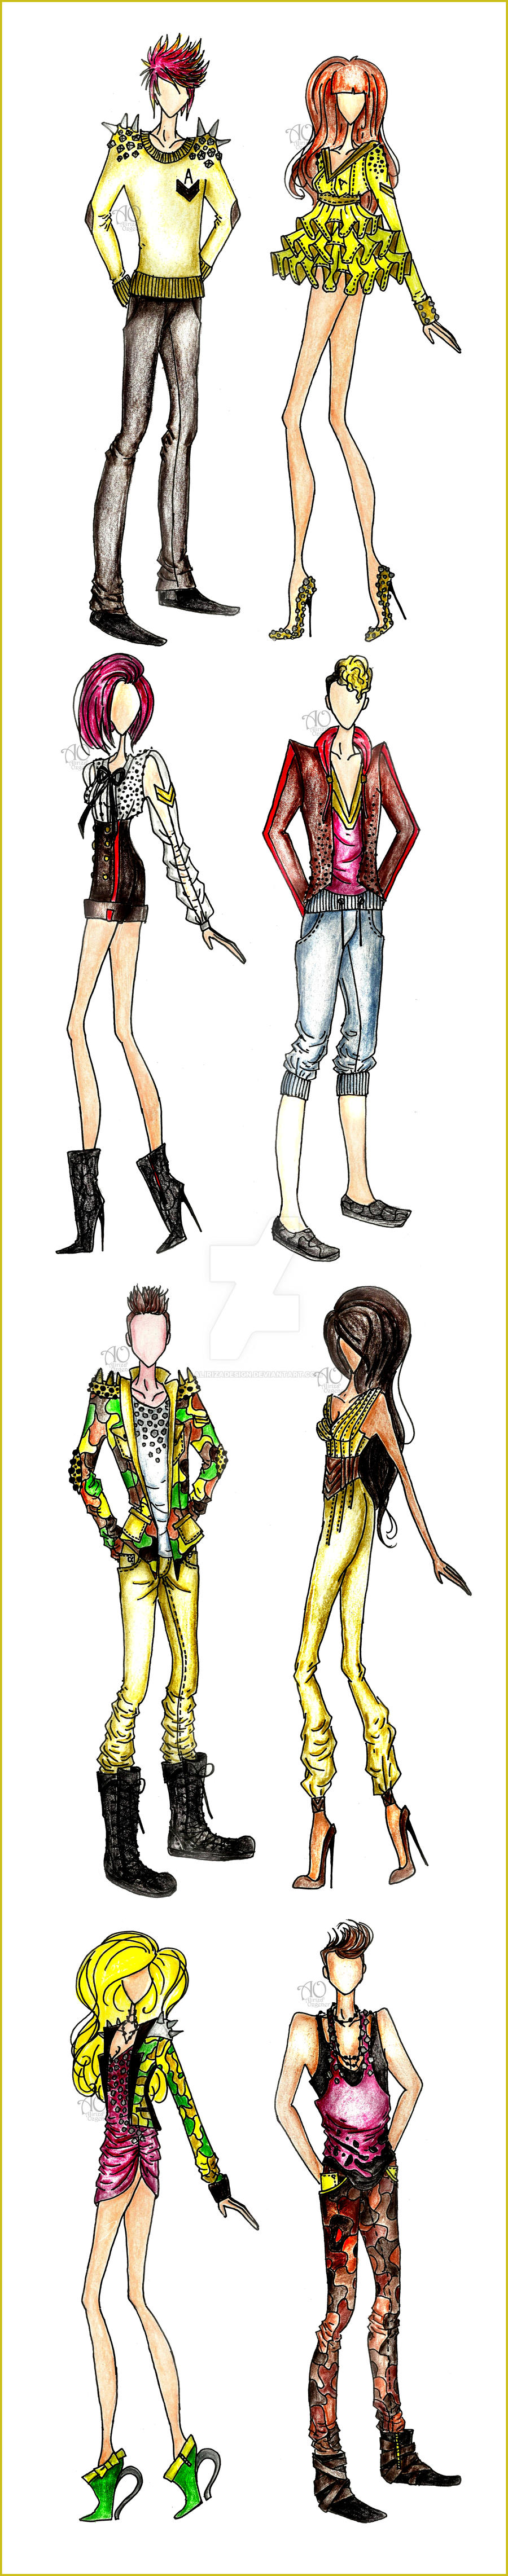 High Street Fashion By Alirizadesign On Deviantart